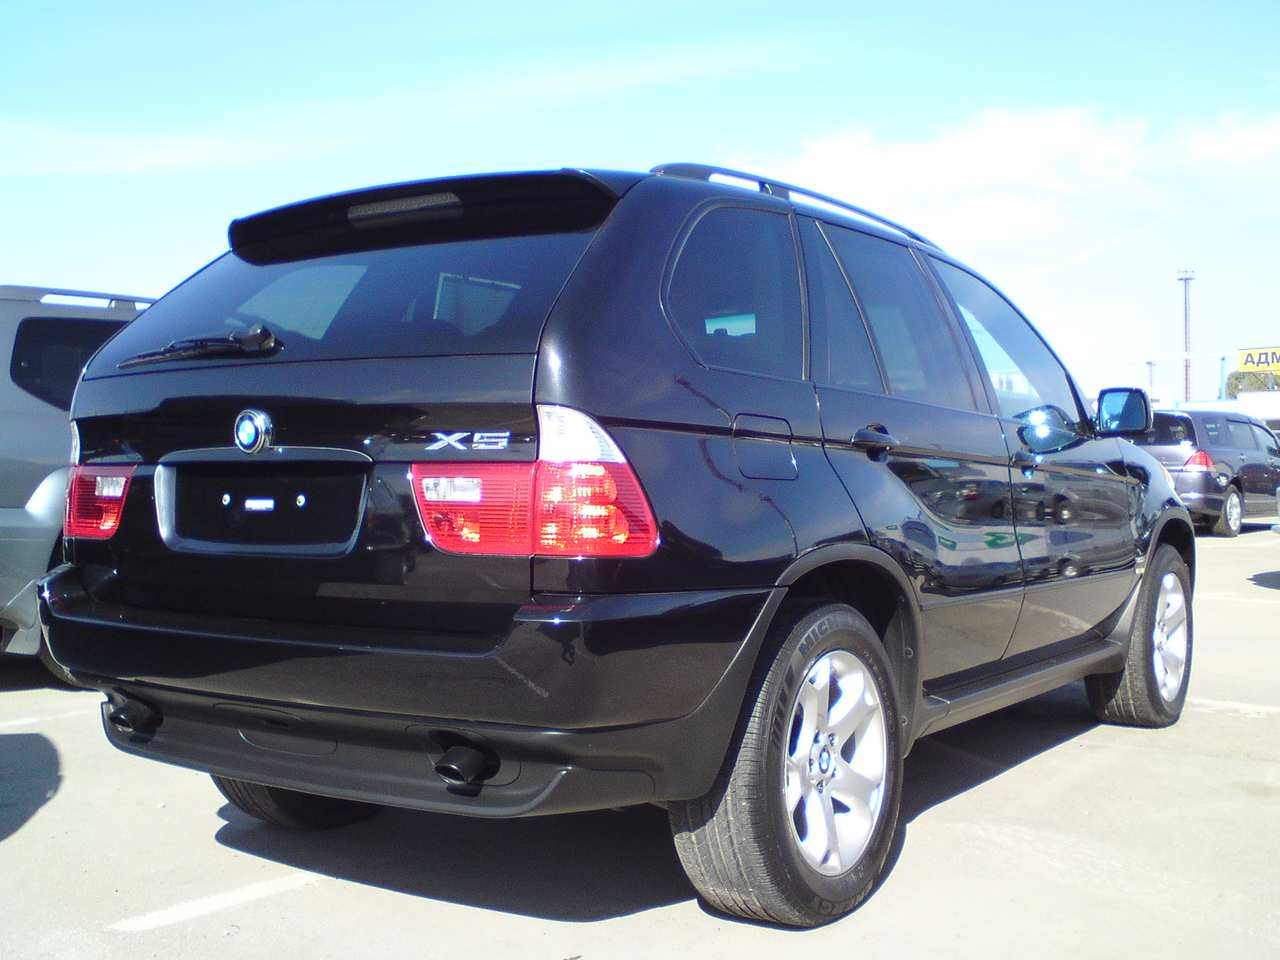 used 2005 bmw x5 photos 3000cc gasoline automatic for sale. Black Bedroom Furniture Sets. Home Design Ideas